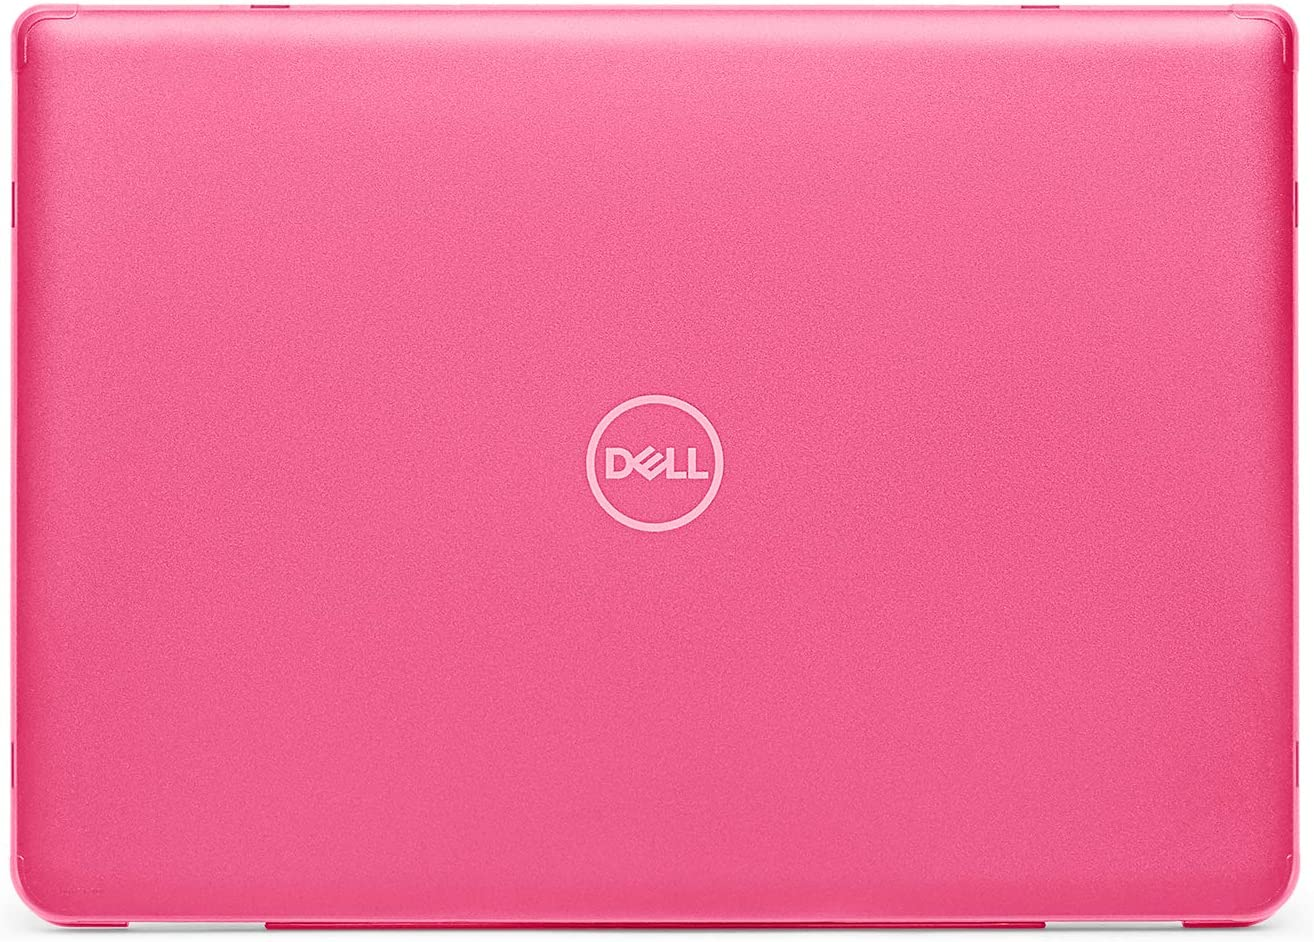 """mCover Hard Shell Case for 14"""" Dell Latitude 3400 Business Laptop Computers Released After March 2019 (NOT Compatible with Other Dell Latitude Computers) (Pink)"""